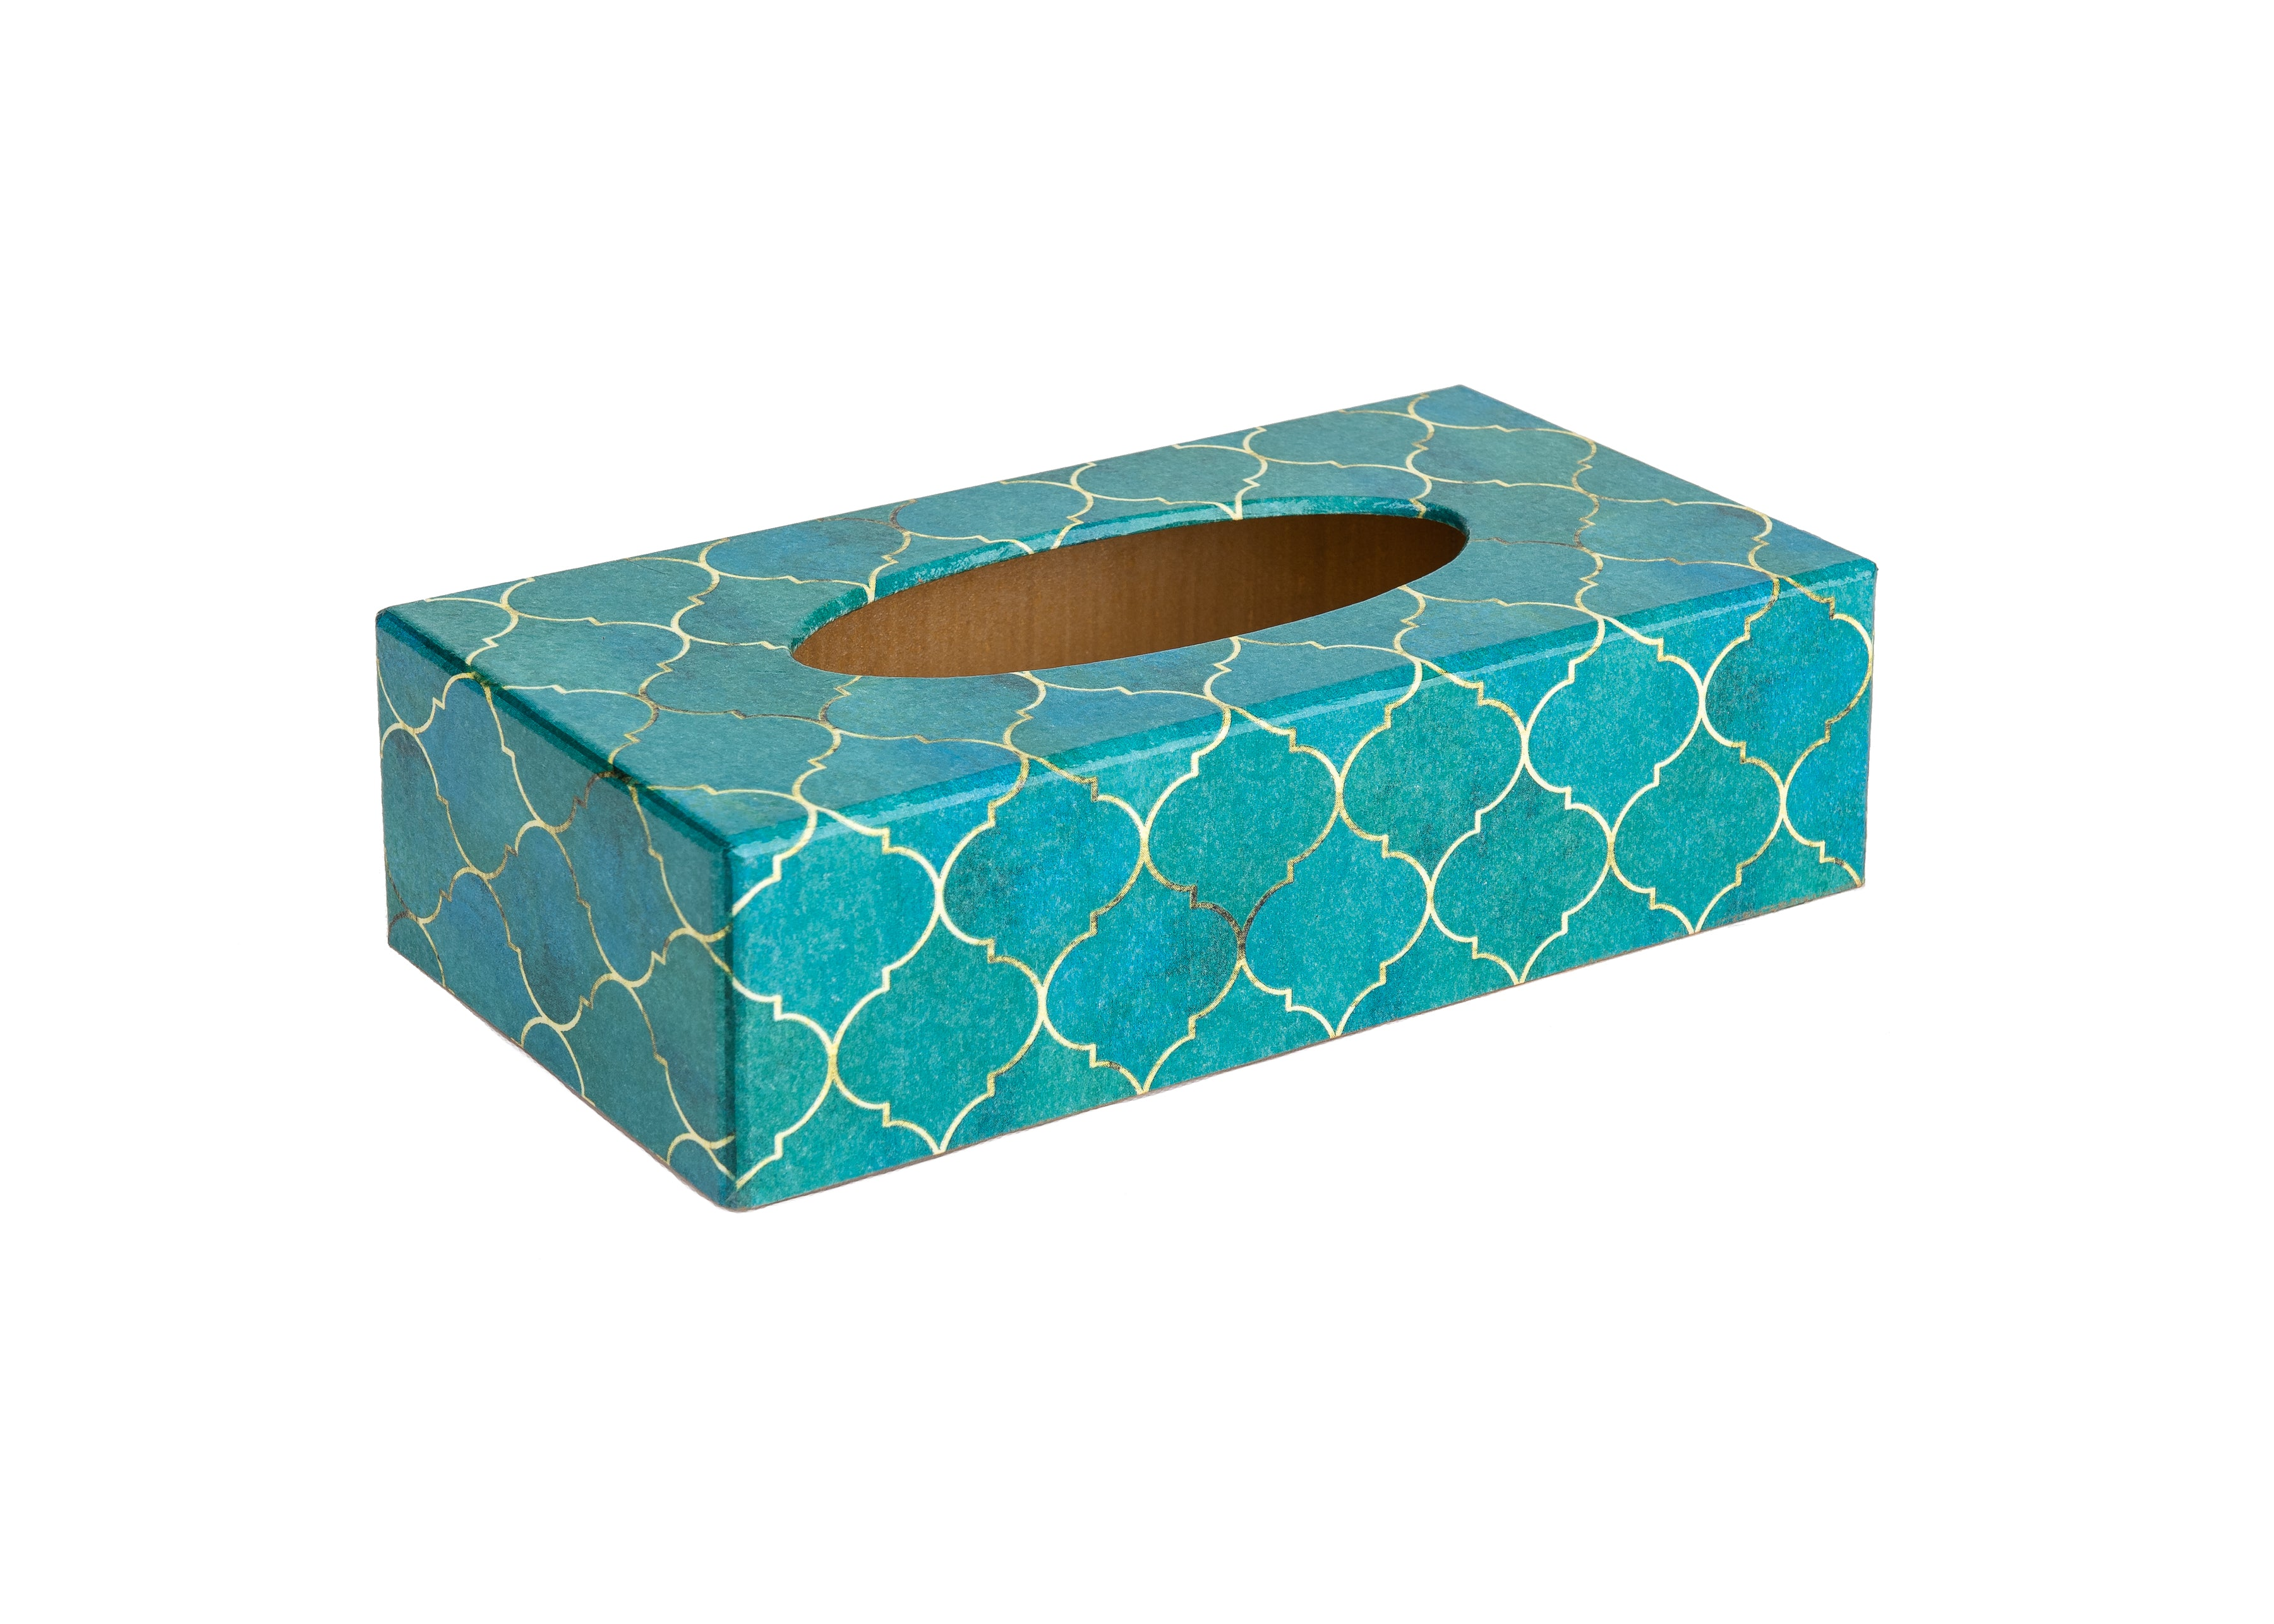 Turquoise Tiles wooden Tissue Box Cover